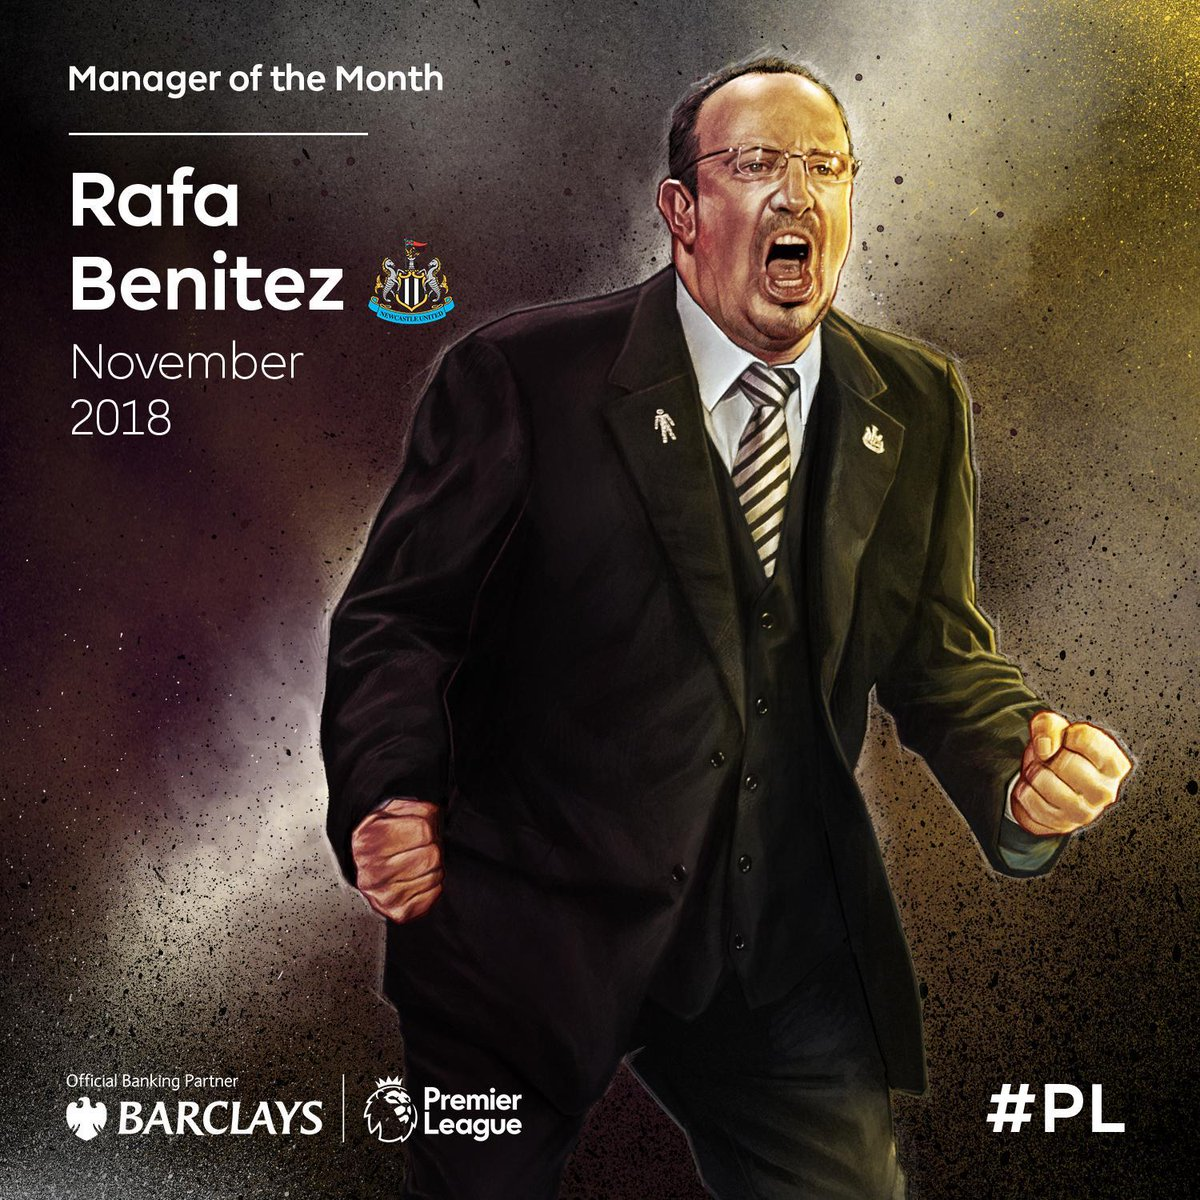 3️⃣ matches 3️⃣ victories  @NUFC boss @rafabenitezweb is the @BarclaysFooty #PL Manager of the Month for November ⚫️⚪️  #PLAwardsAwards